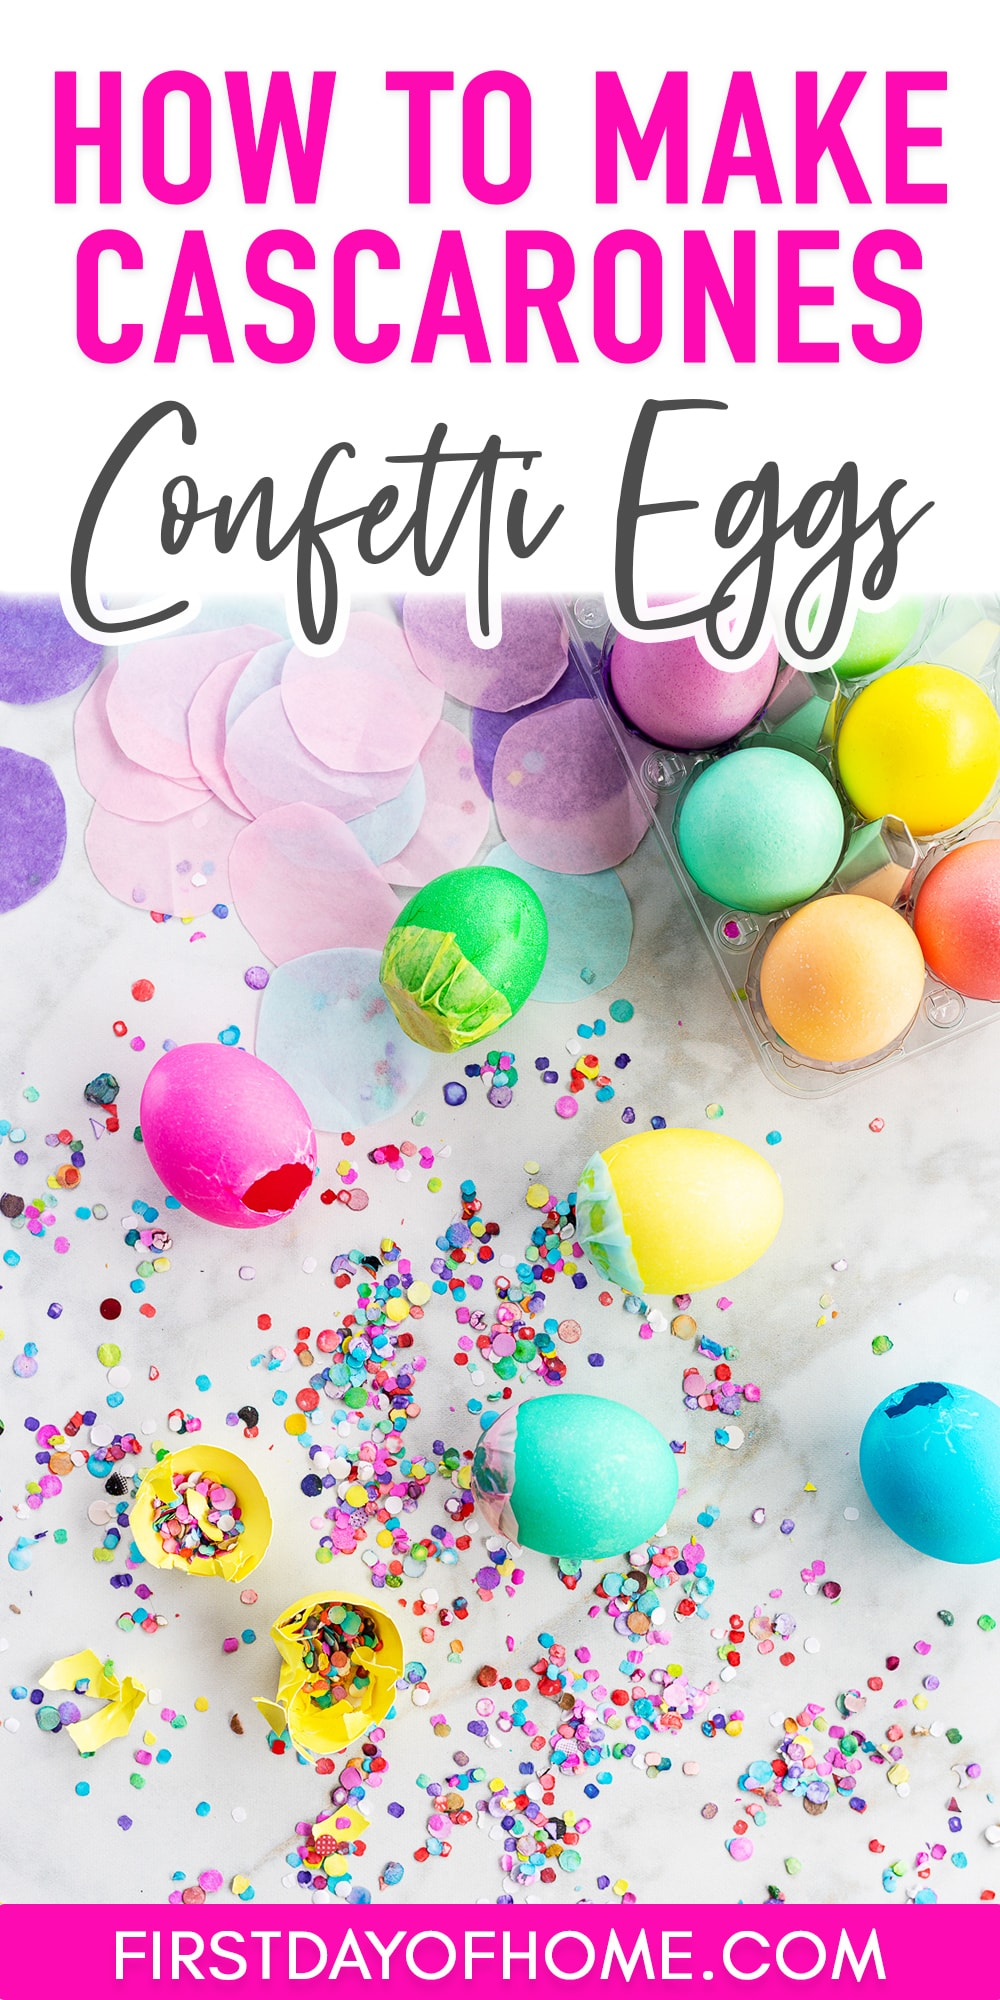 "Dyed Easter eggs filled with confetti with one egg cracked open and text overlay reading ""How to Make Cascarones Confetti Eggs"""